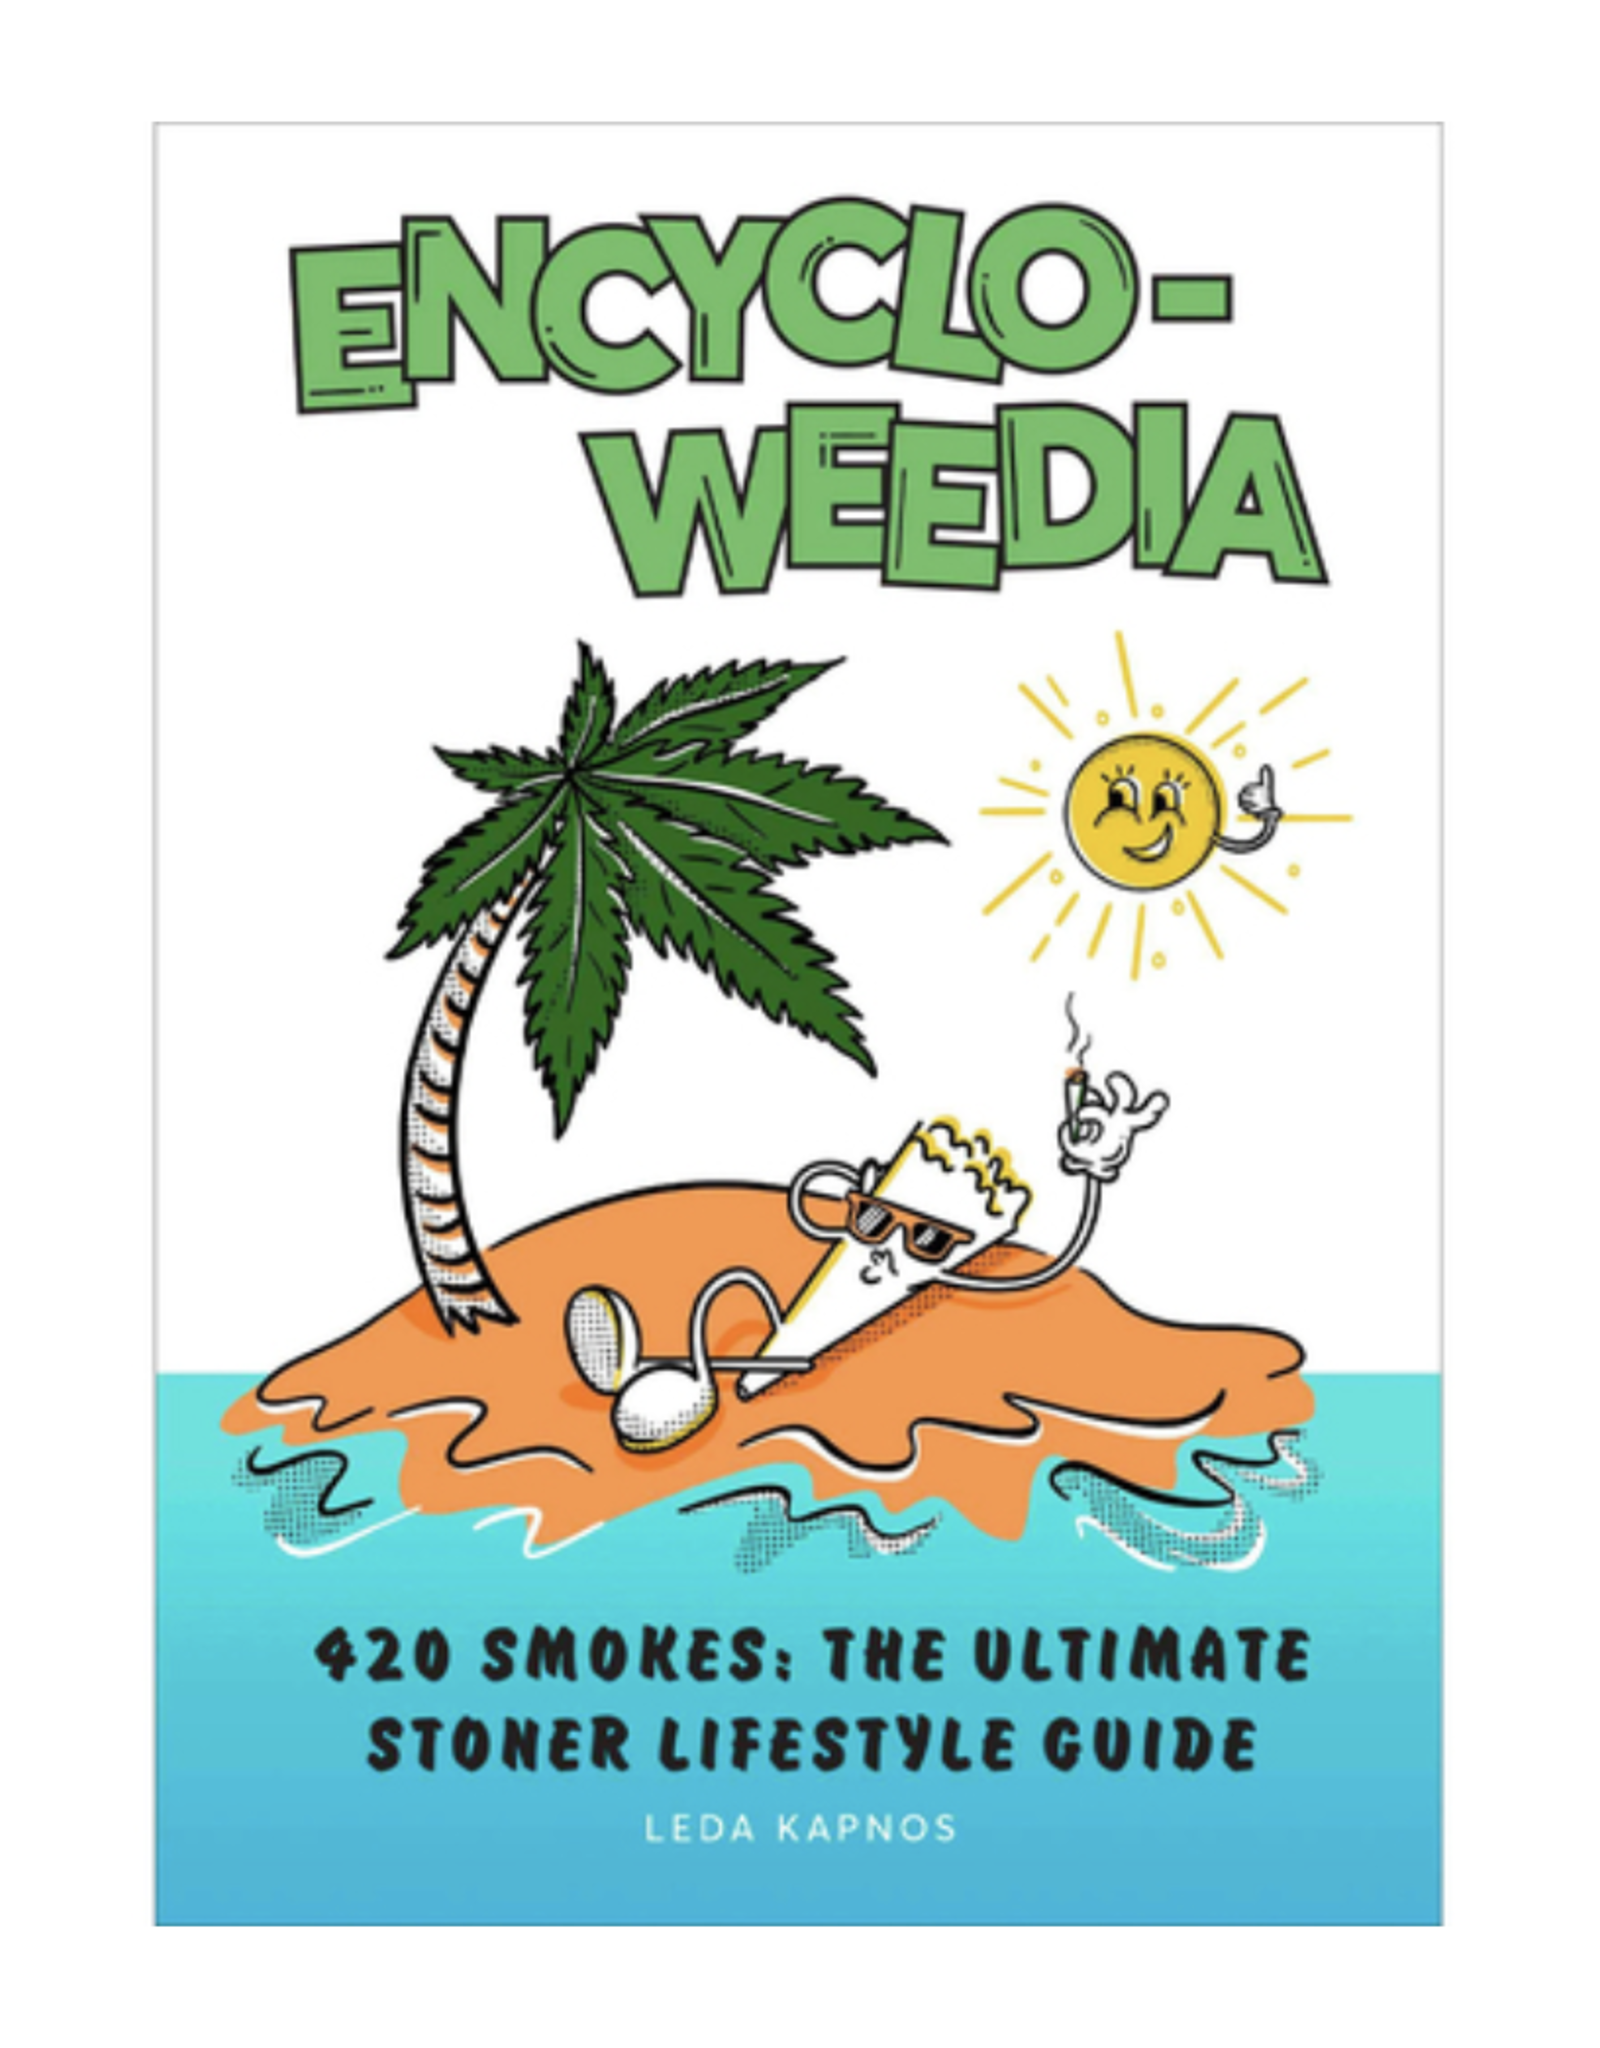 Encyclo-Weedia - 420 Smokes: The Ultimate Stoner Lifestyle Guide